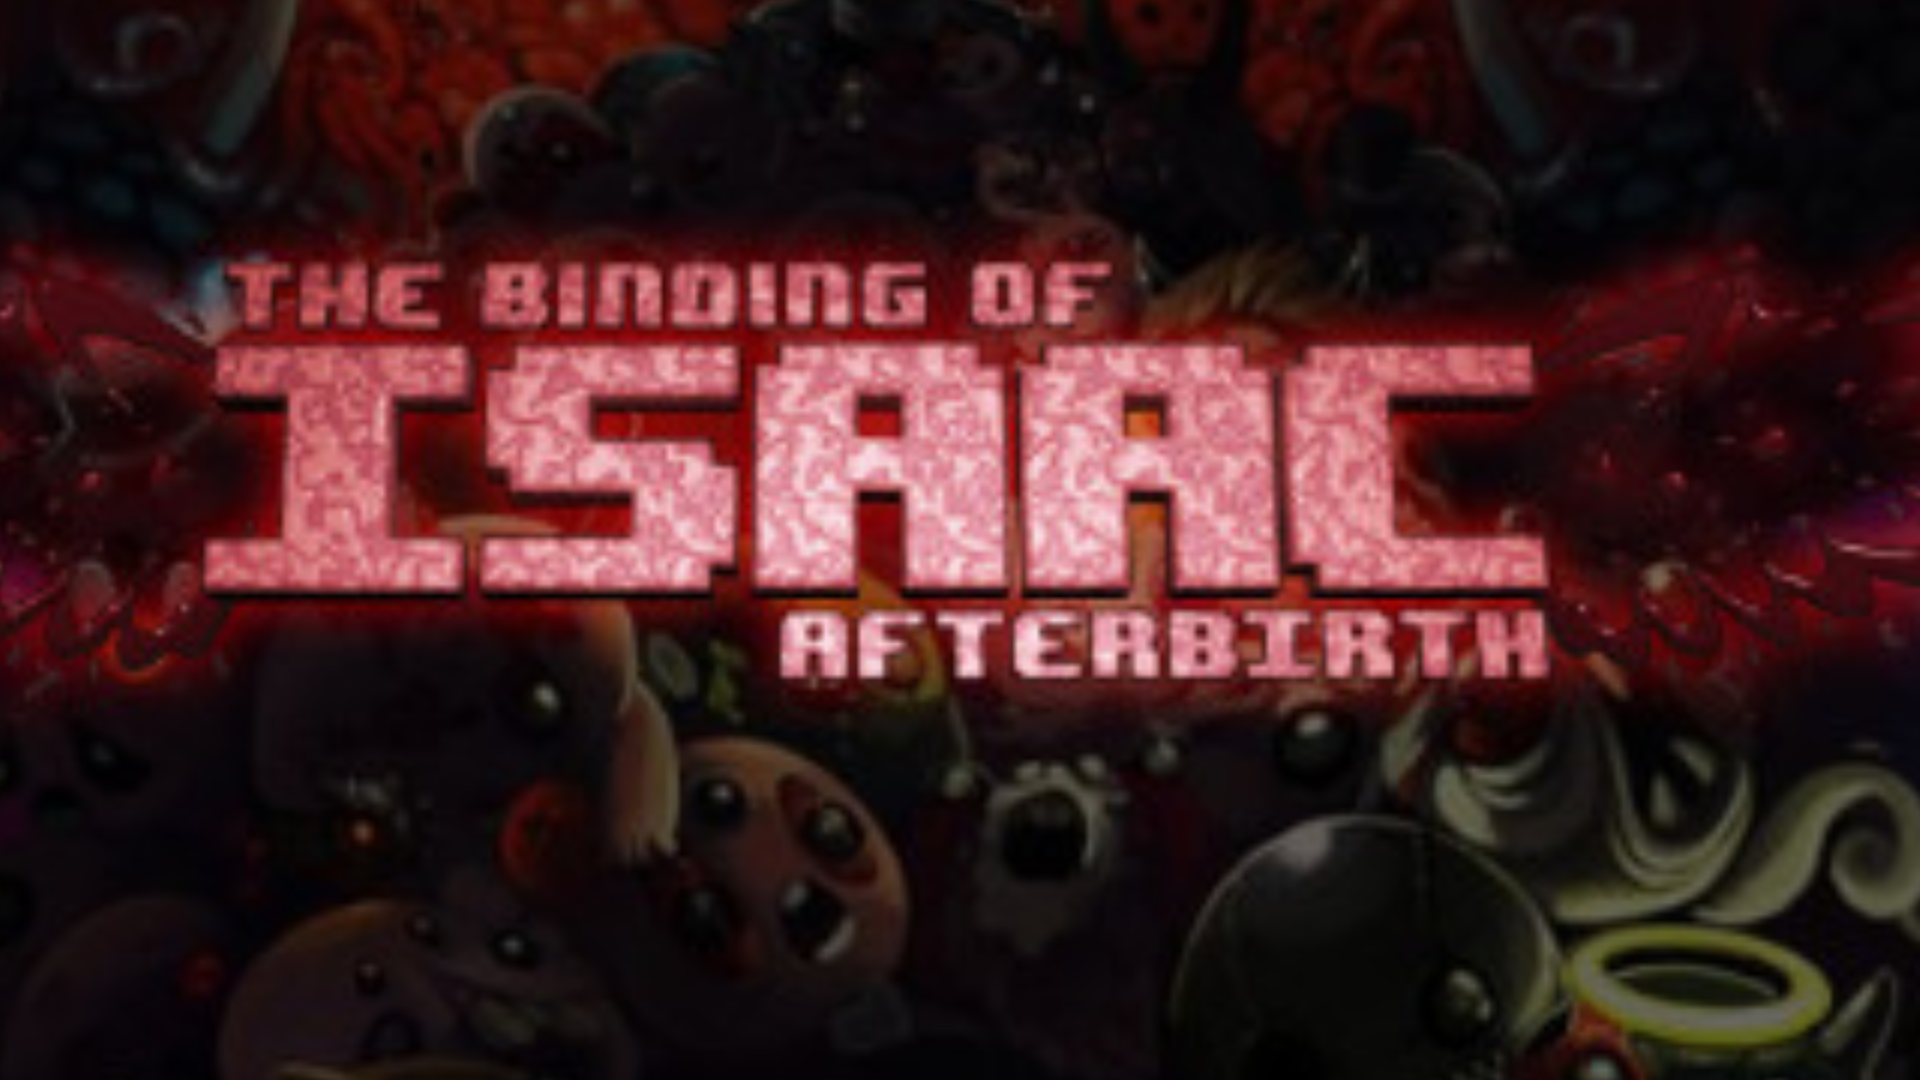 The Binding Of Isaac Afterbirth Show Me Games Independent